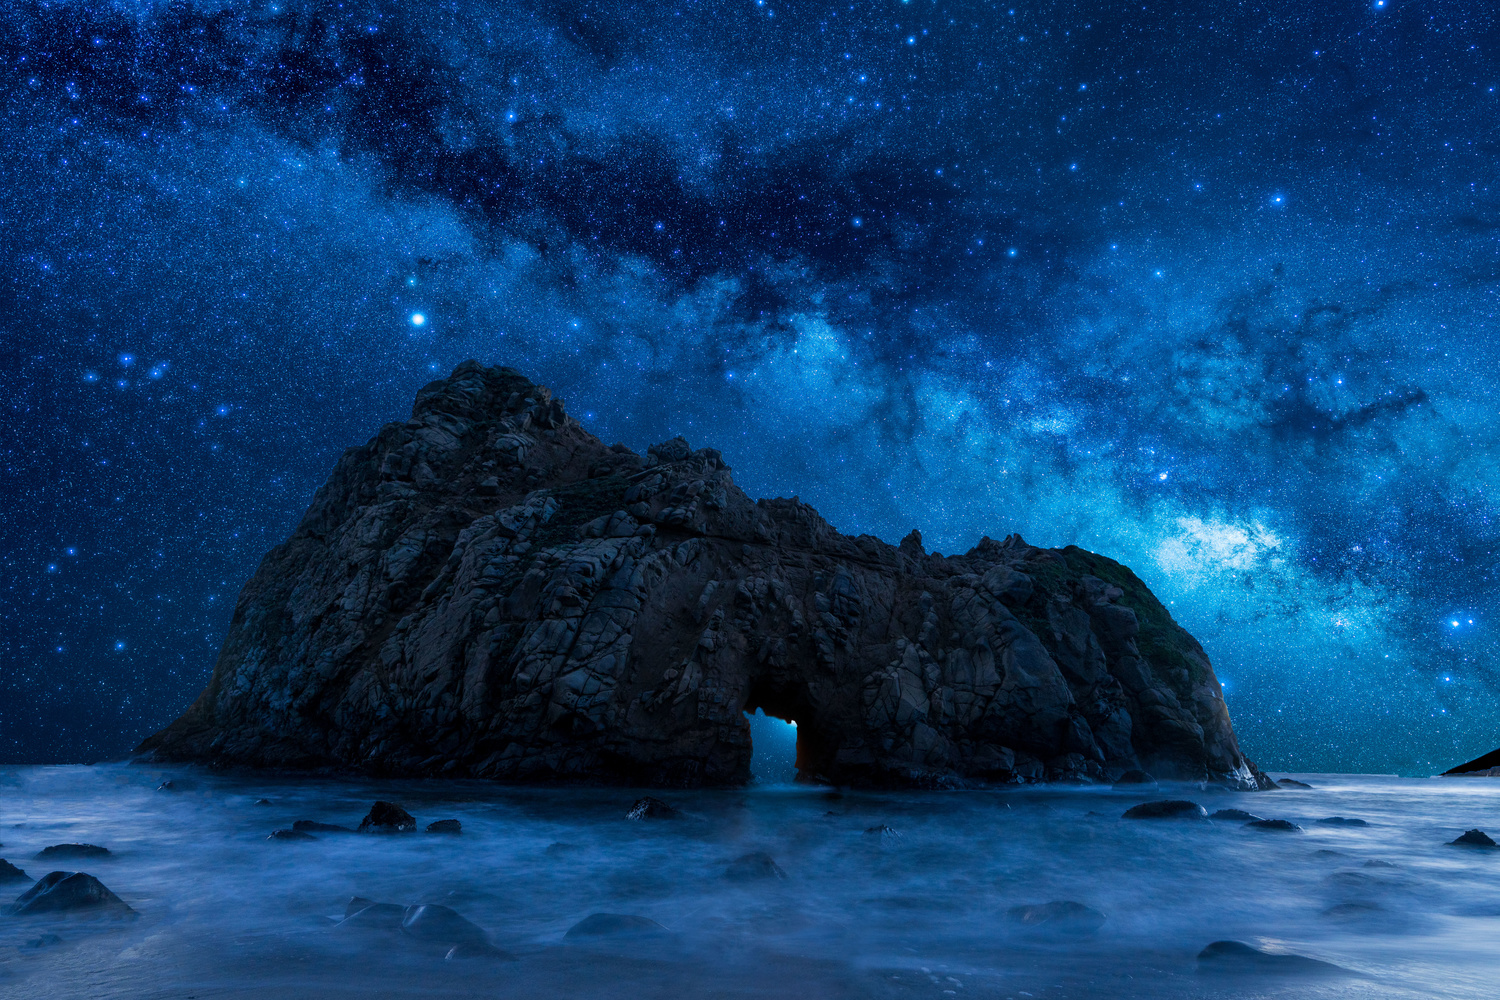 Milky Way arching over Keyhole arch at Pfeiffer beach by Karthik Subramaniam